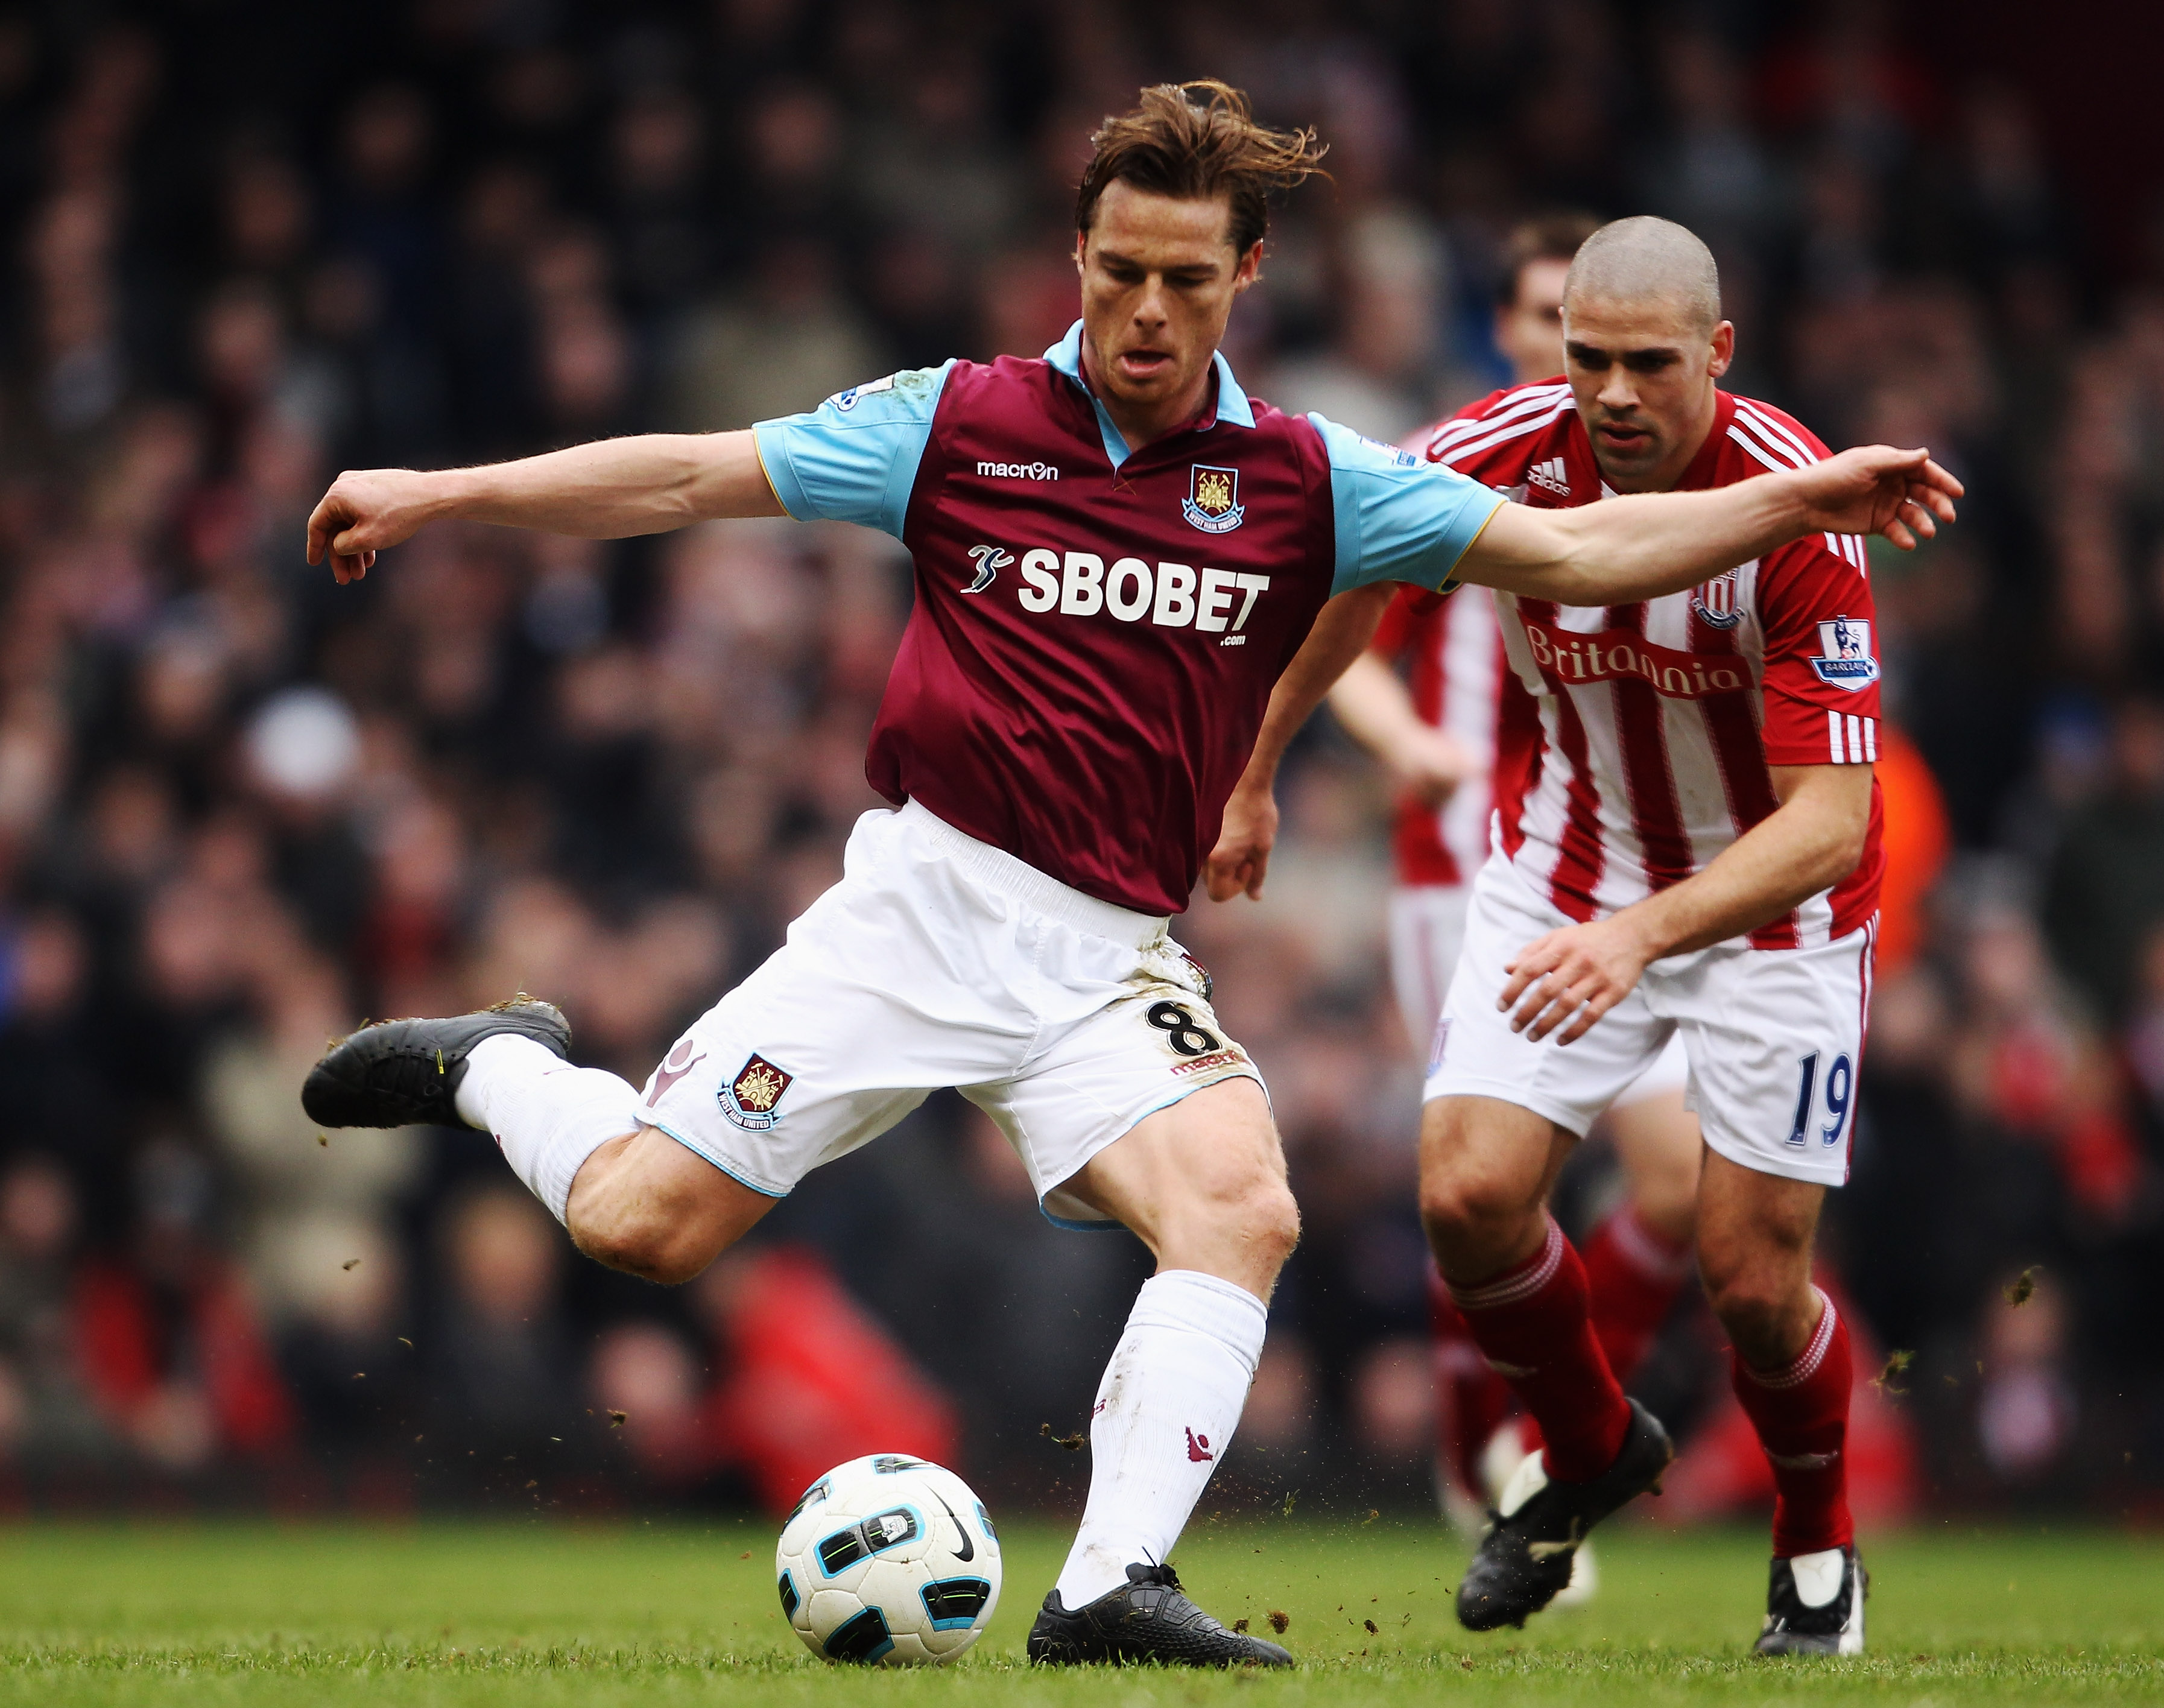 LONDON, UNITED KINGDOM - MARCH 05:  Scott Parker of West Ham United controls the ball during the Barclays Premier League match between West Ham United and Stoke City at the Boleyn Ground on March 5, 2011 in London, England.  (Photo by Scott Heavey/Getty I